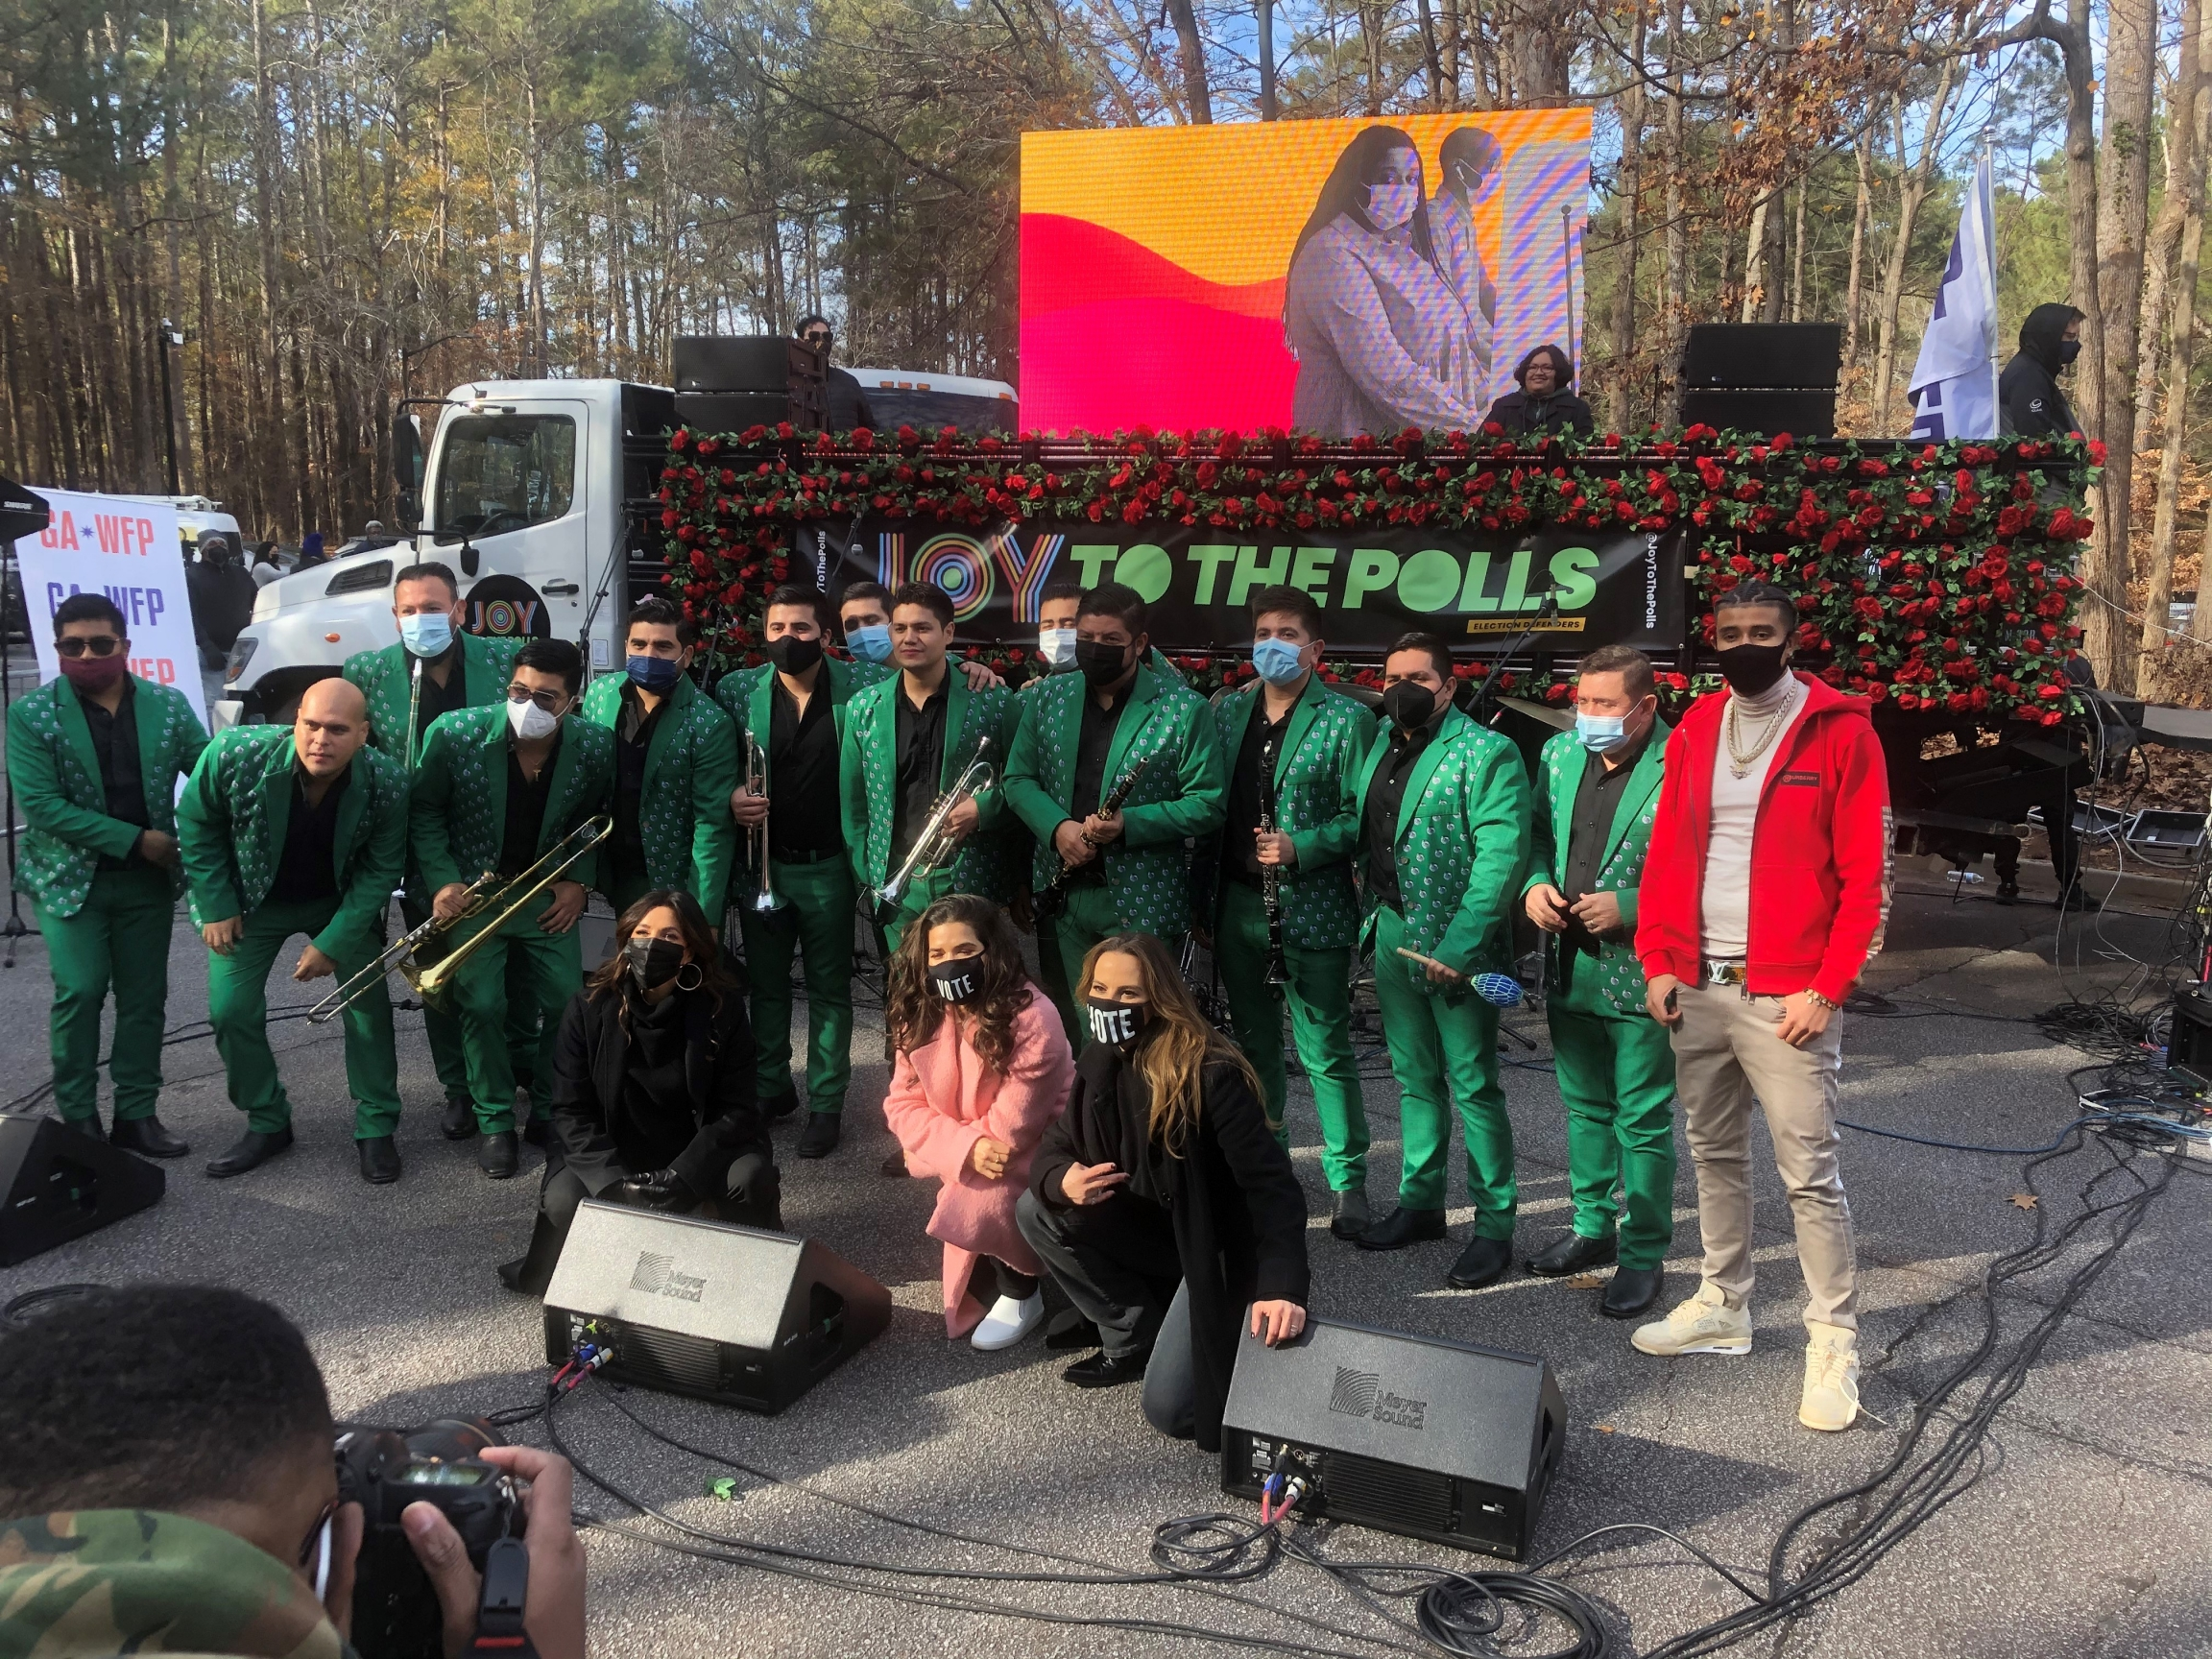 A group of musicians wearing green uniforms and other actors and musicians stand outside together.